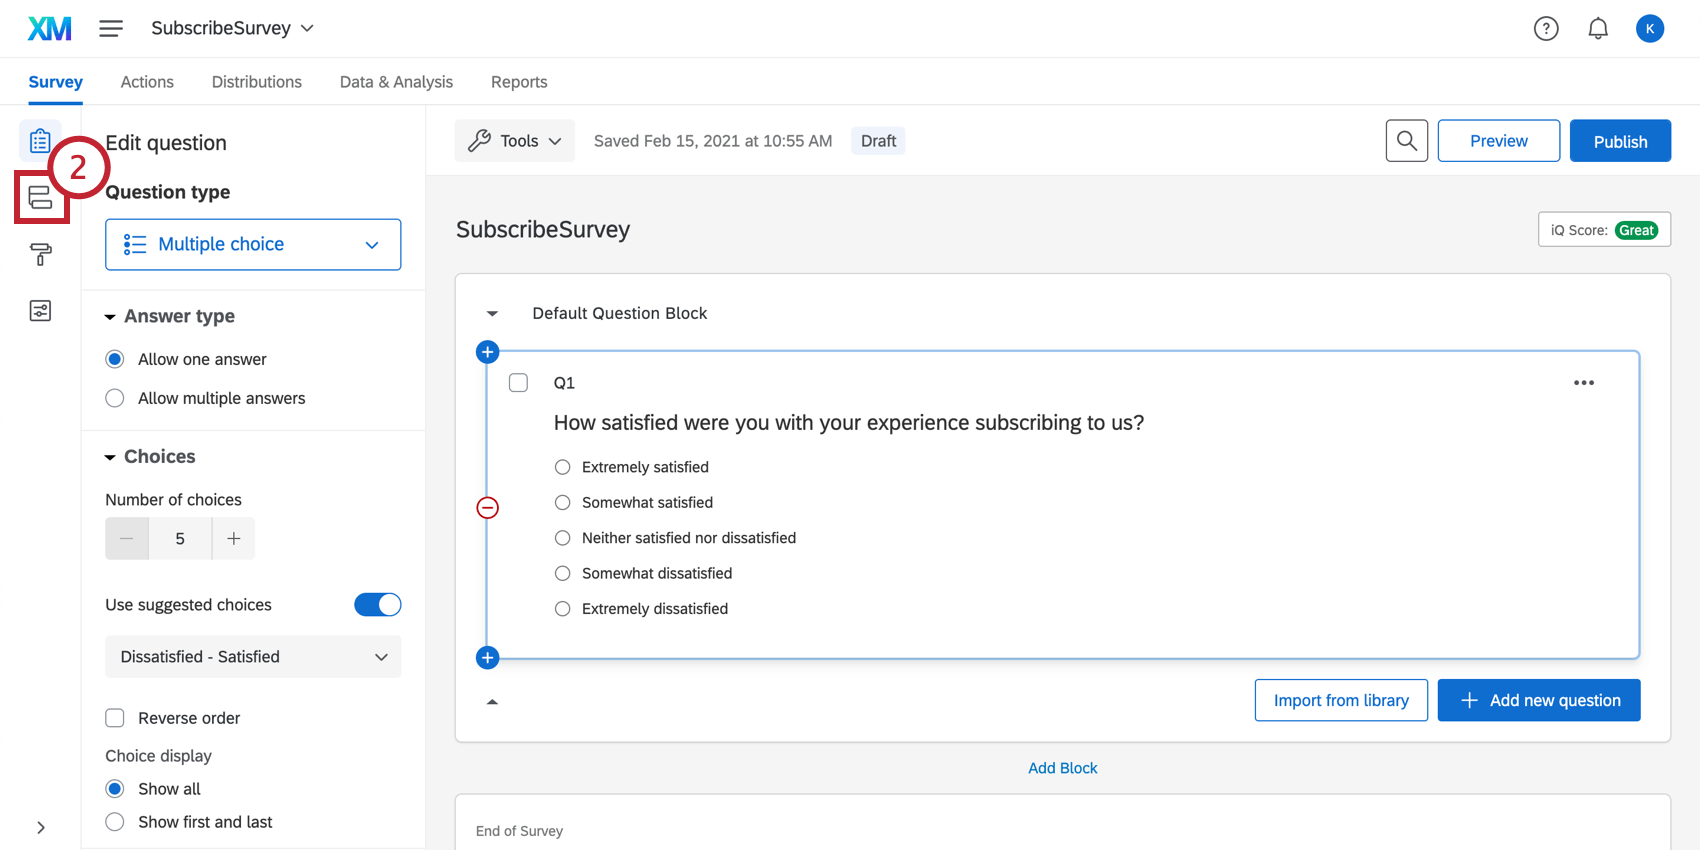 Selecting the survey flow